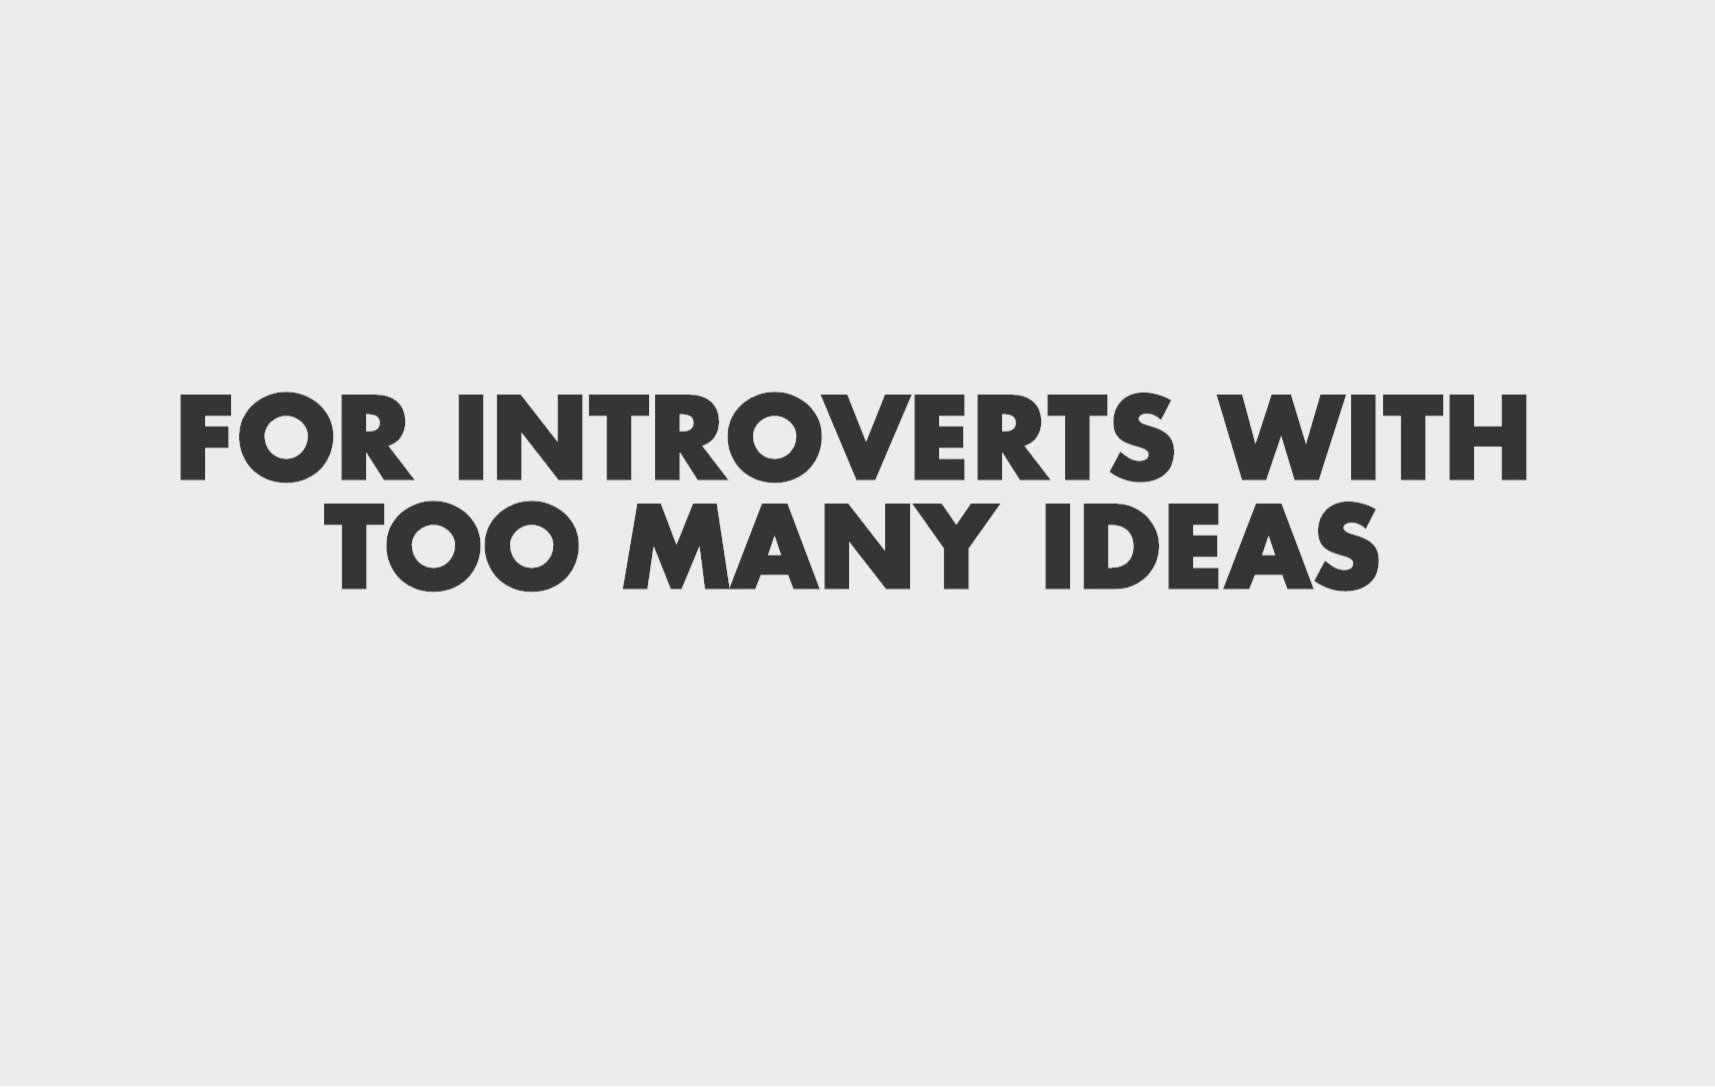 The real reason why introverts are so quiet introvert spring for introverts with too many ideas fandeluxe Images